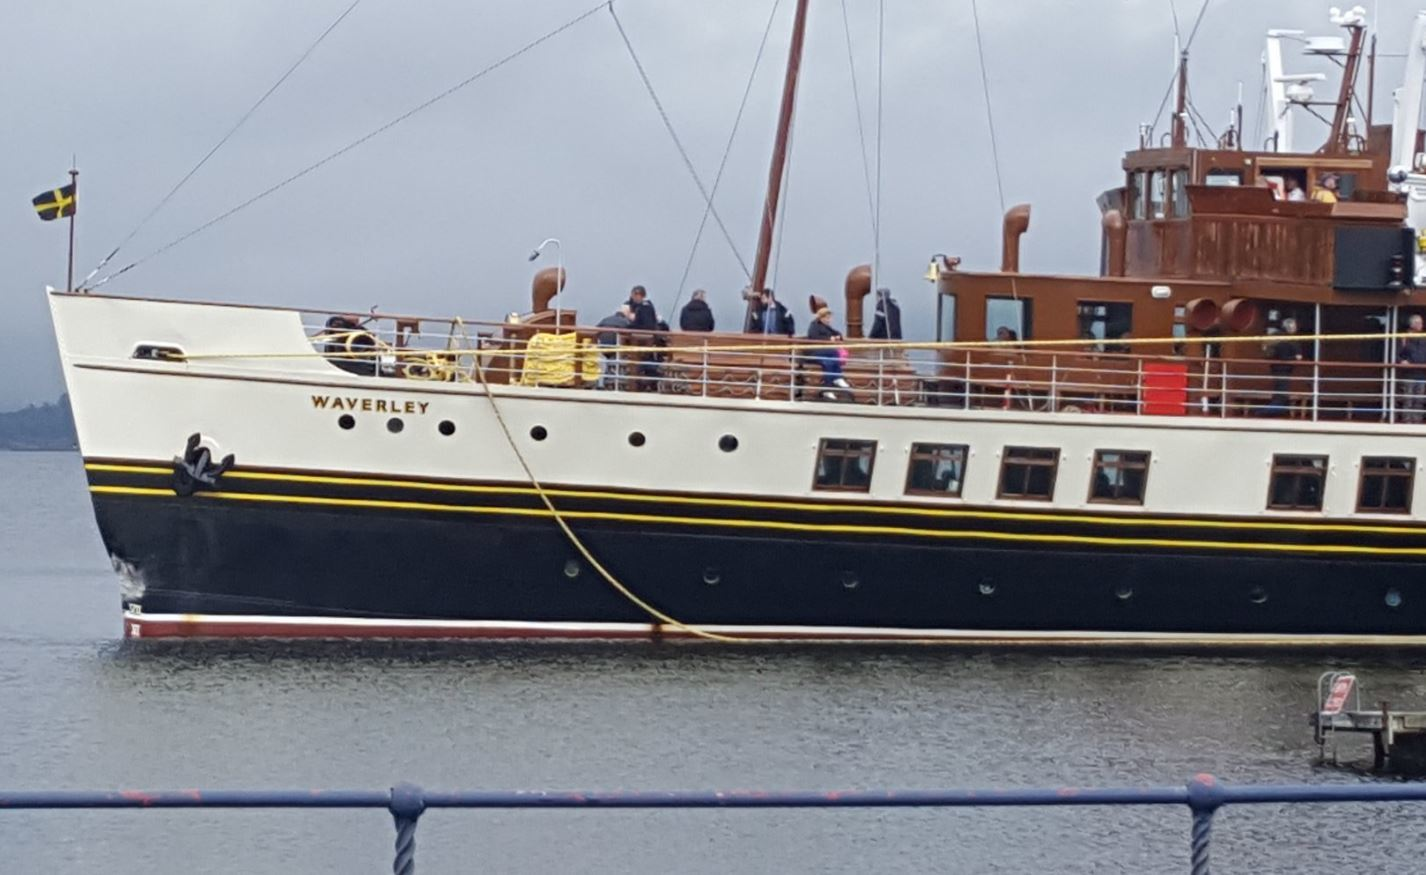 The paddle steamer sustained minor damage in the incident (Peter Wallace / Twitter)